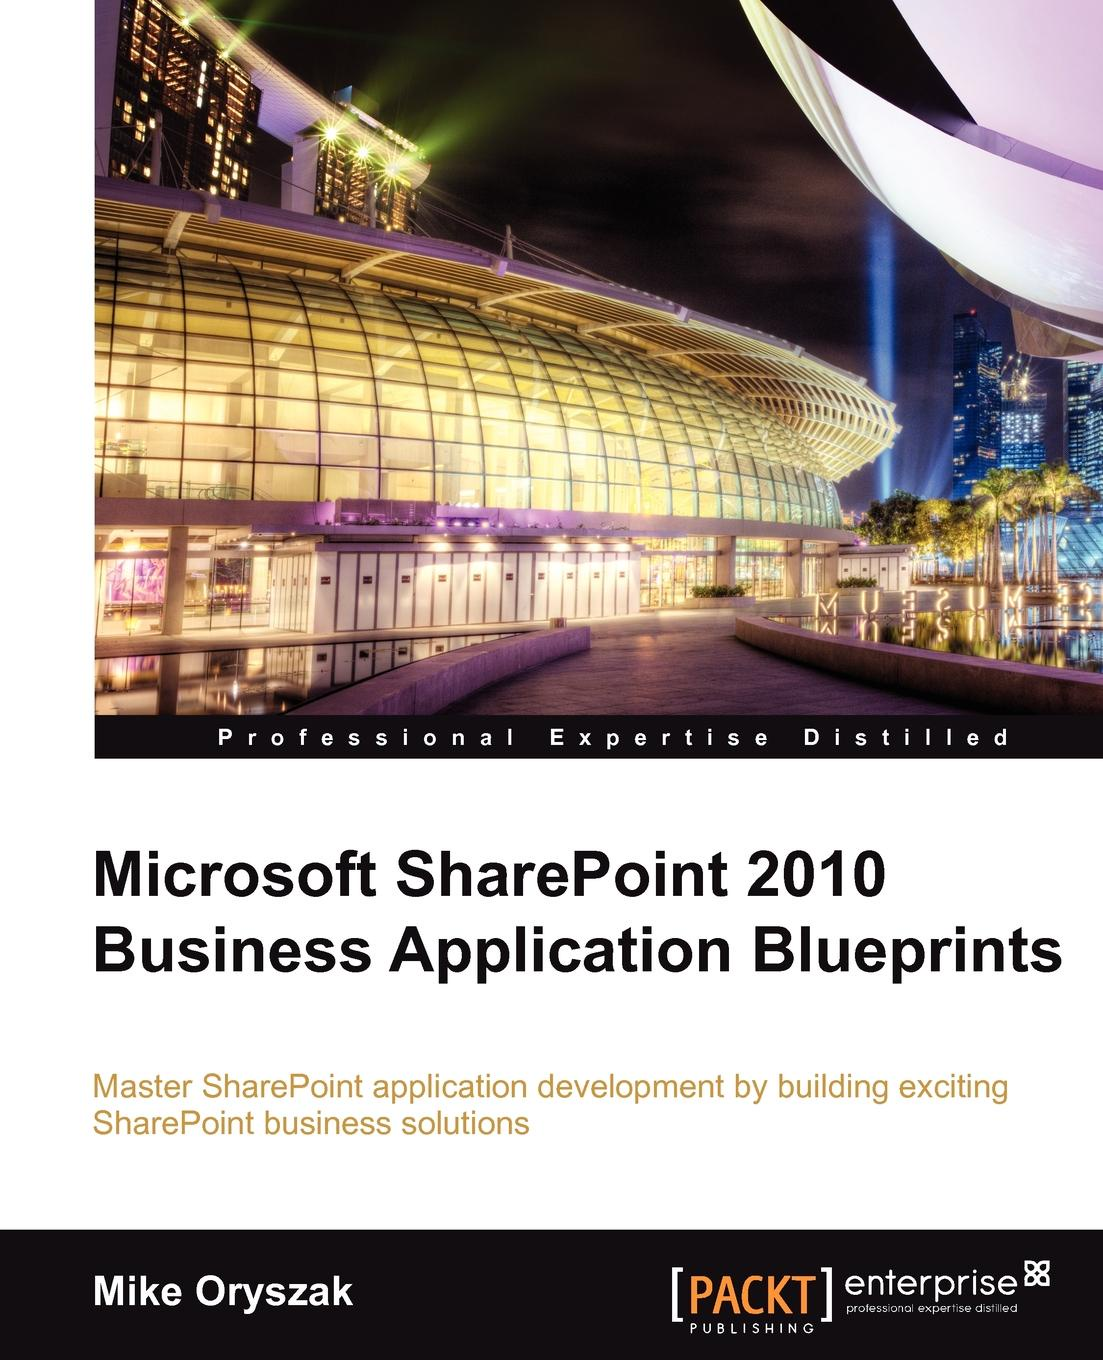 Mike Oryszak Microsoft Sharepoint 2010 Business Application Blueprints hidesign business mike